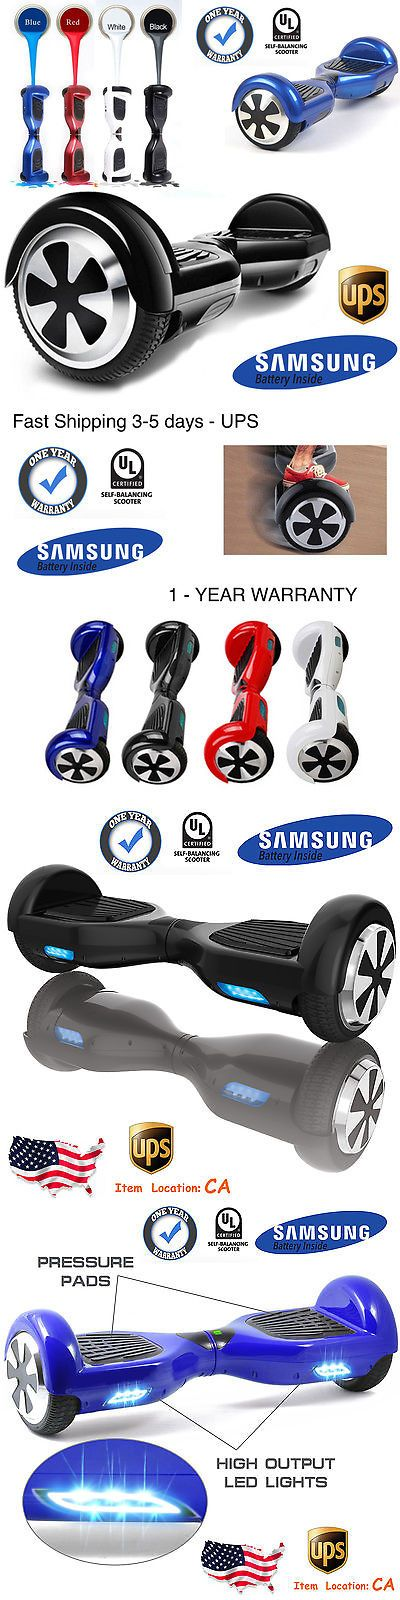 Electric Scooters 47349: 6.5 2Wheel Hoverboard Electric Self-Balancing Scooter Ul2272 Certified-Us Stock -> BUY IT NOW ONLY: $229.99 on eBay!